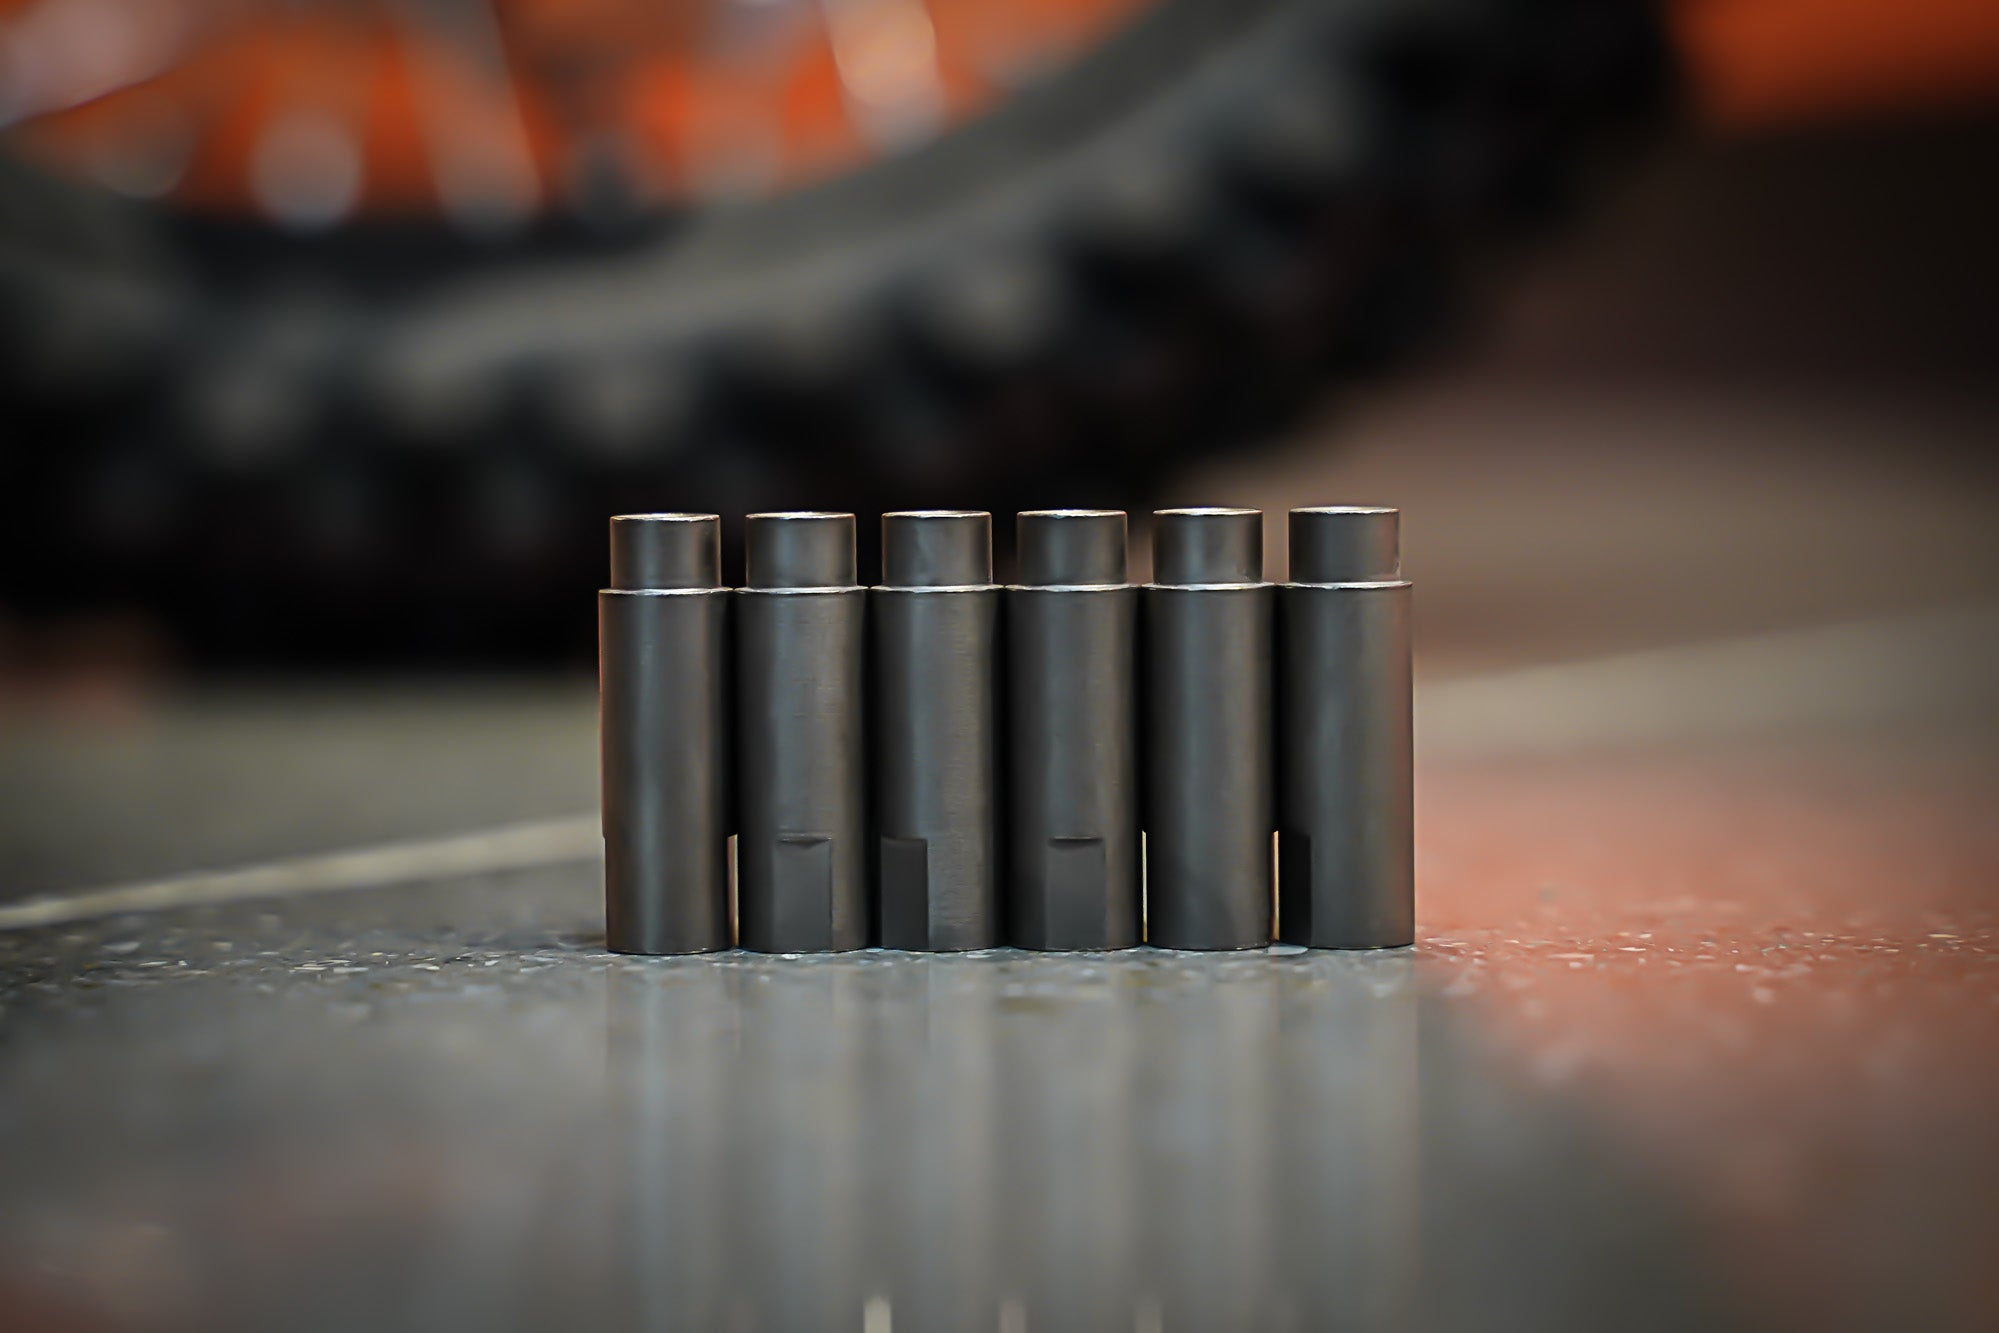 KTM / Husqvarna 50 Clutch Pins and Bolts